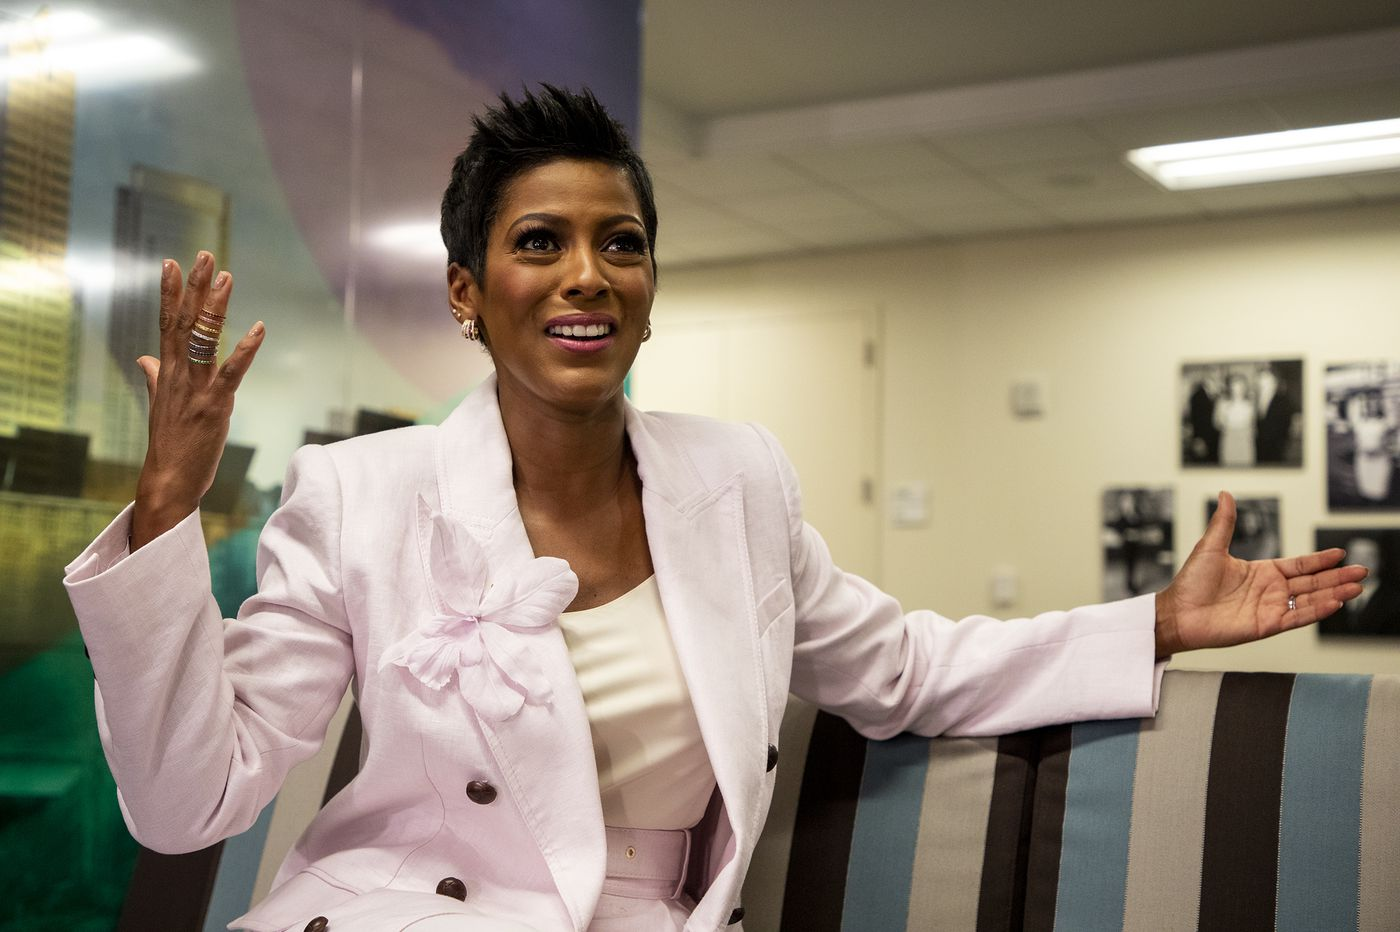 From Temple to 'Today,' Tamron Hall's life has been leading to her own talk show